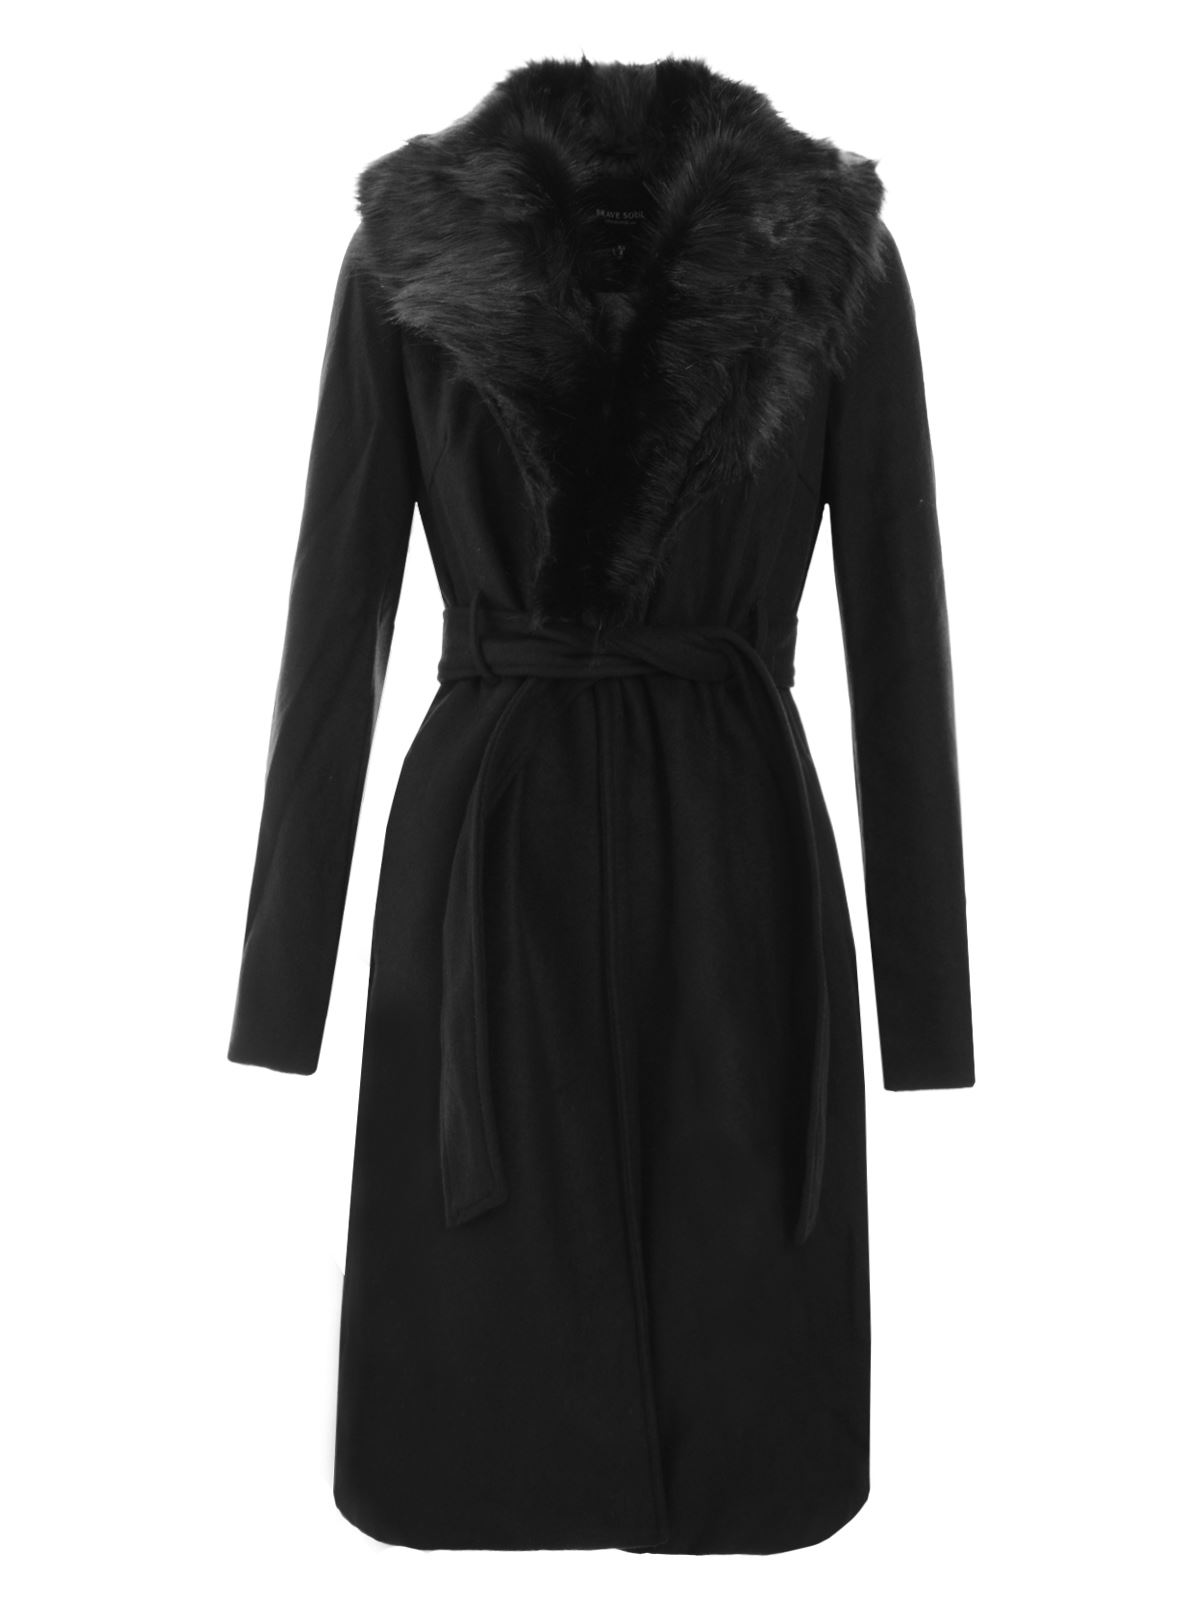 Shop RED VALENTINO Belted Coat - Black, starting at $ Similar ones also available. On SALE now!